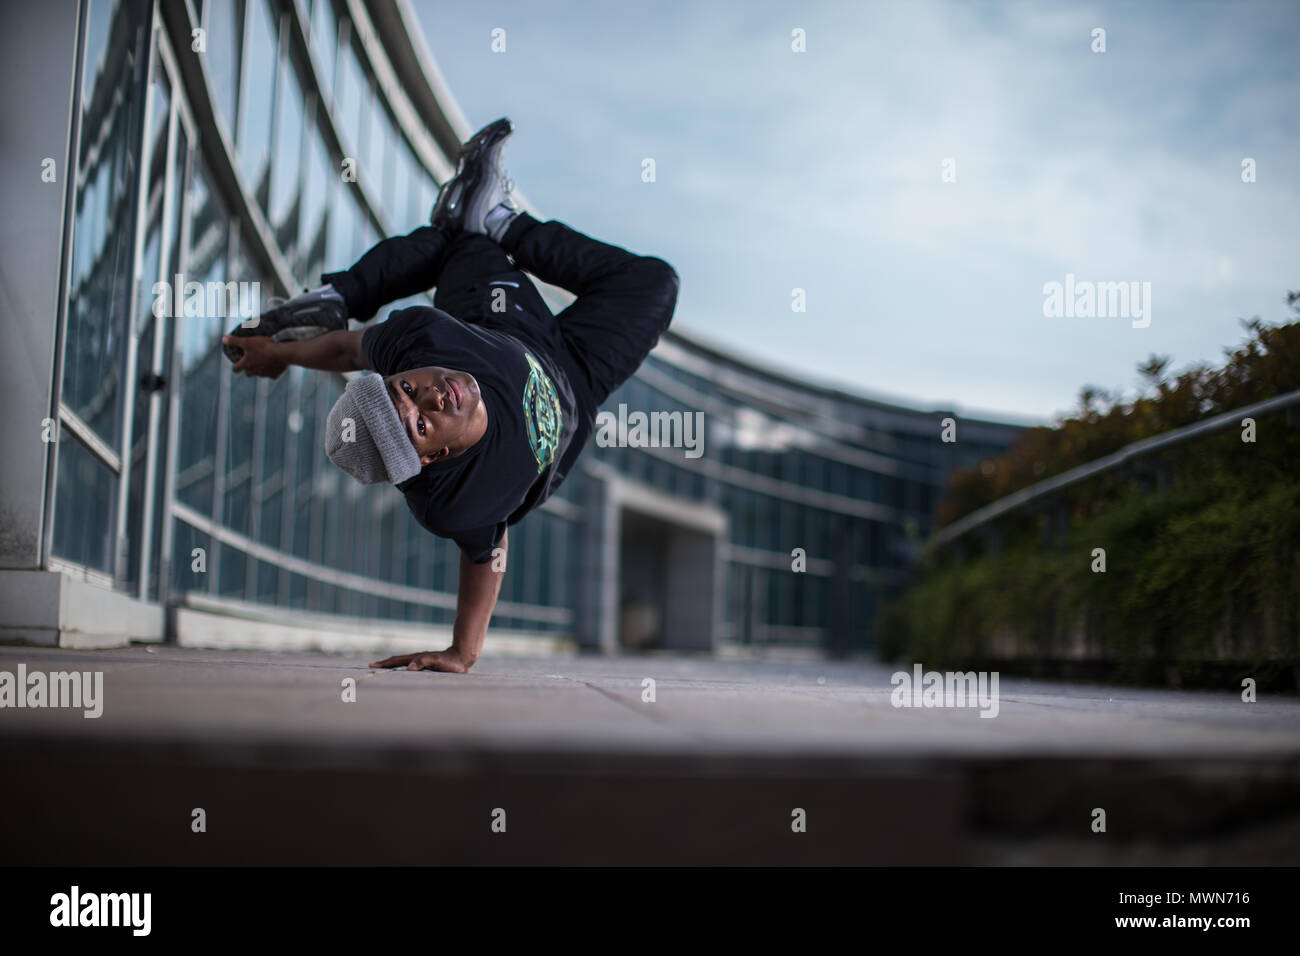 breakdancer during a freez outside a resturant in Albino Stock Photo